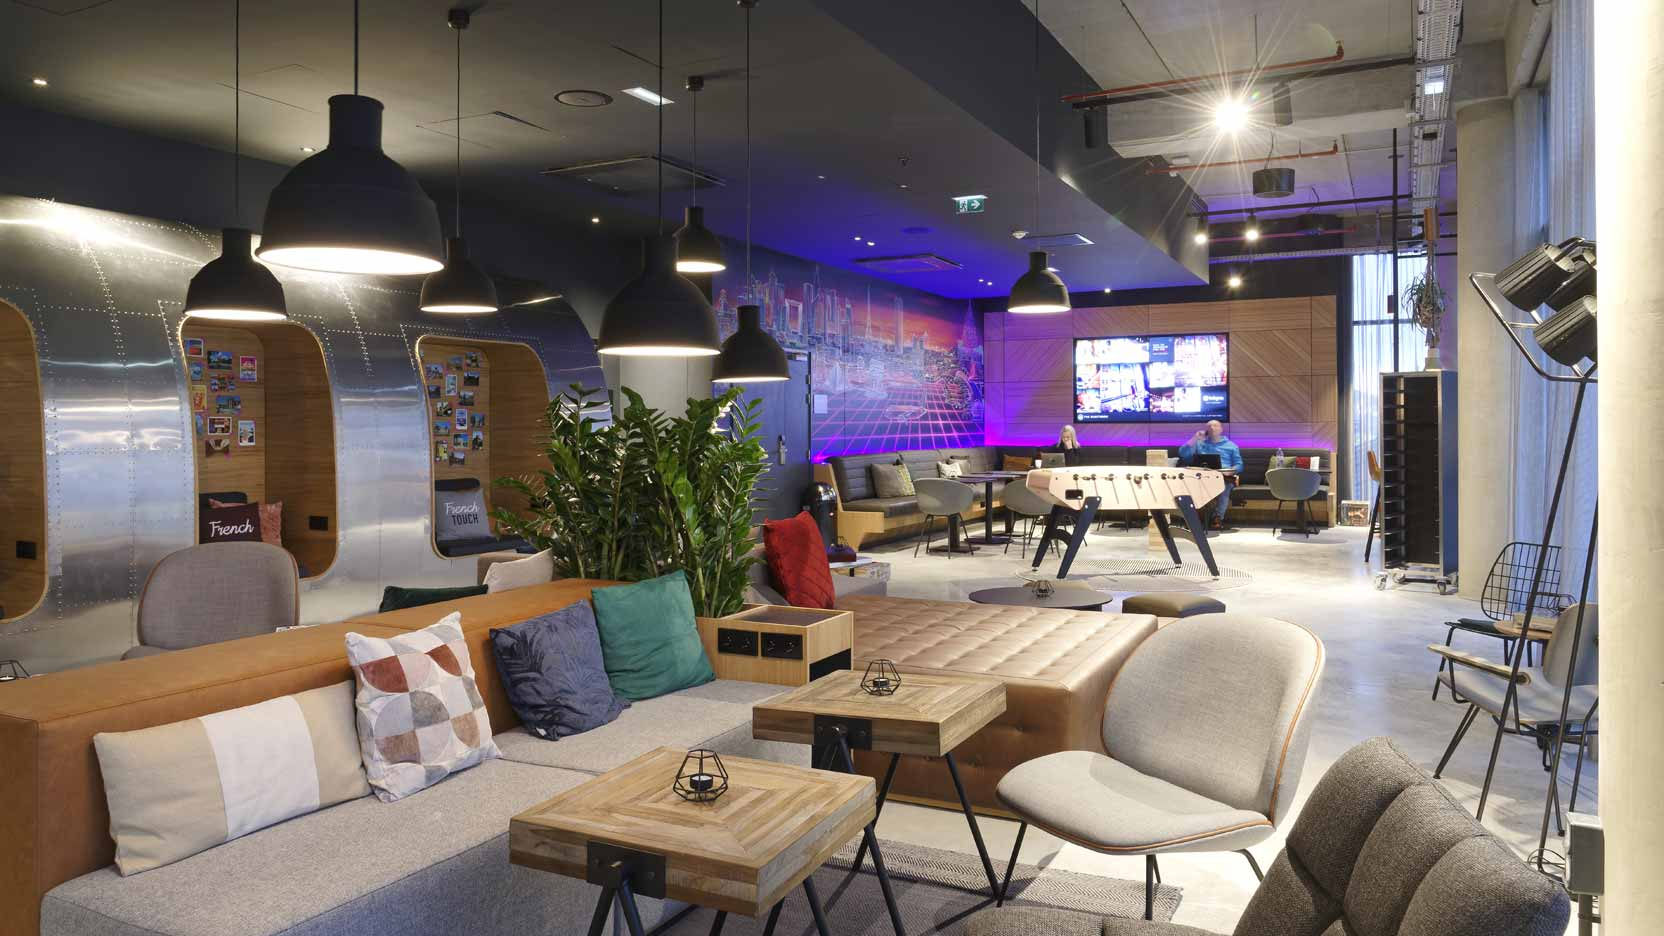 GA Smart Building has built a next-generation Moxy hotel at Roissy Charles de Gaulle airport